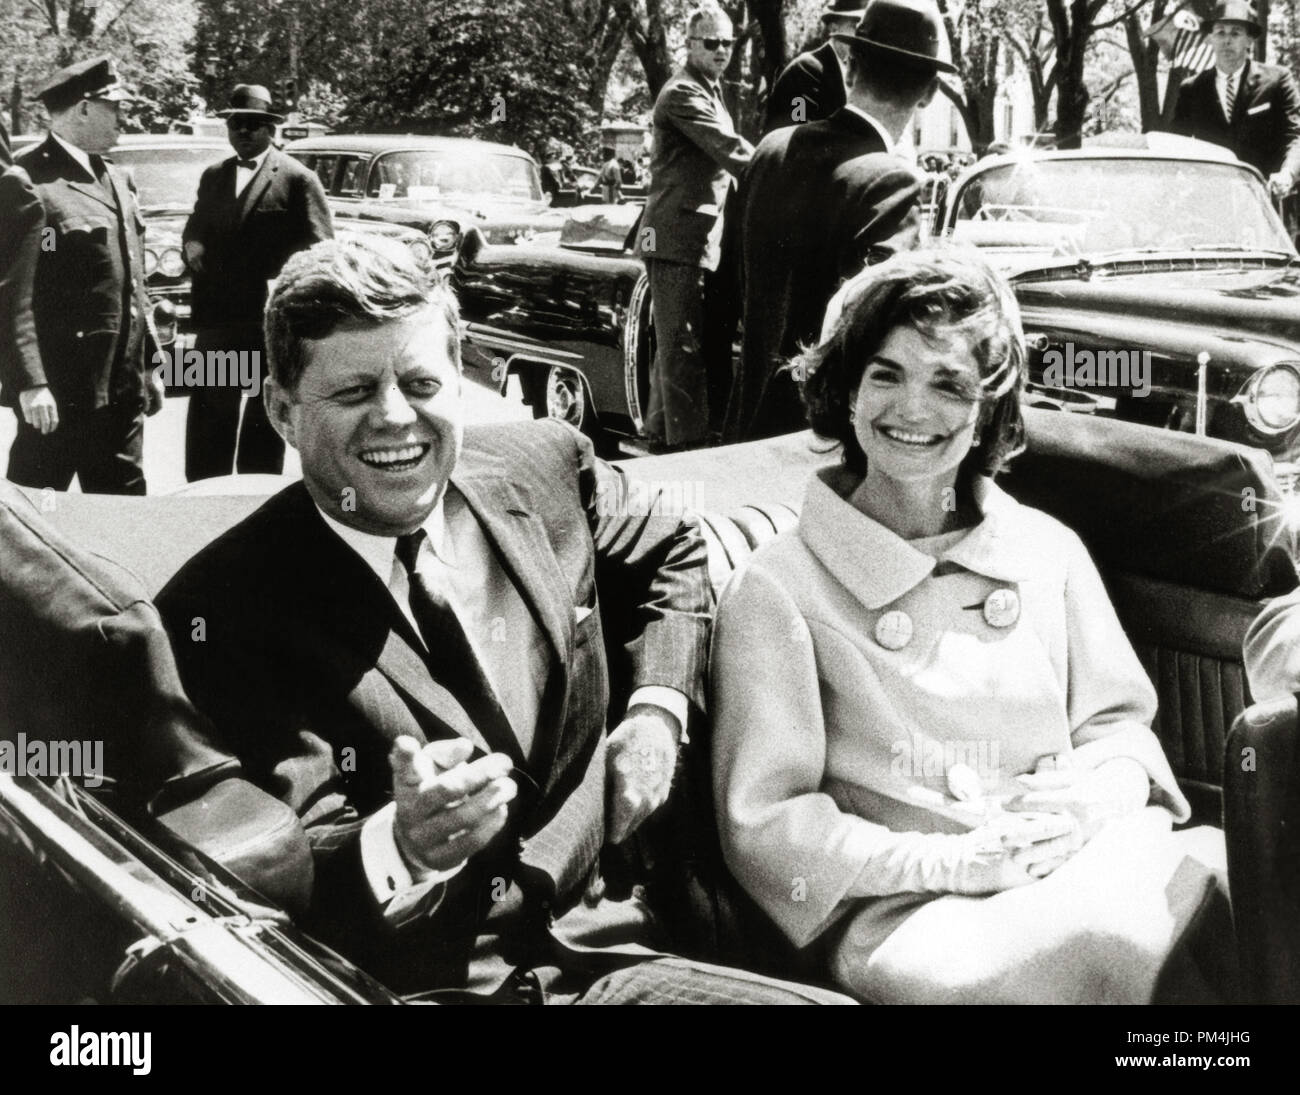 President John F. Kennedy and first lady Jacqueline Kennedy following arrival ceremonies for H. E. Habib Bourguiba, then-president of Tunisia, at Blair House, in Washington, May 3, 1961   File Reference # 1003_778THA - Stock Image